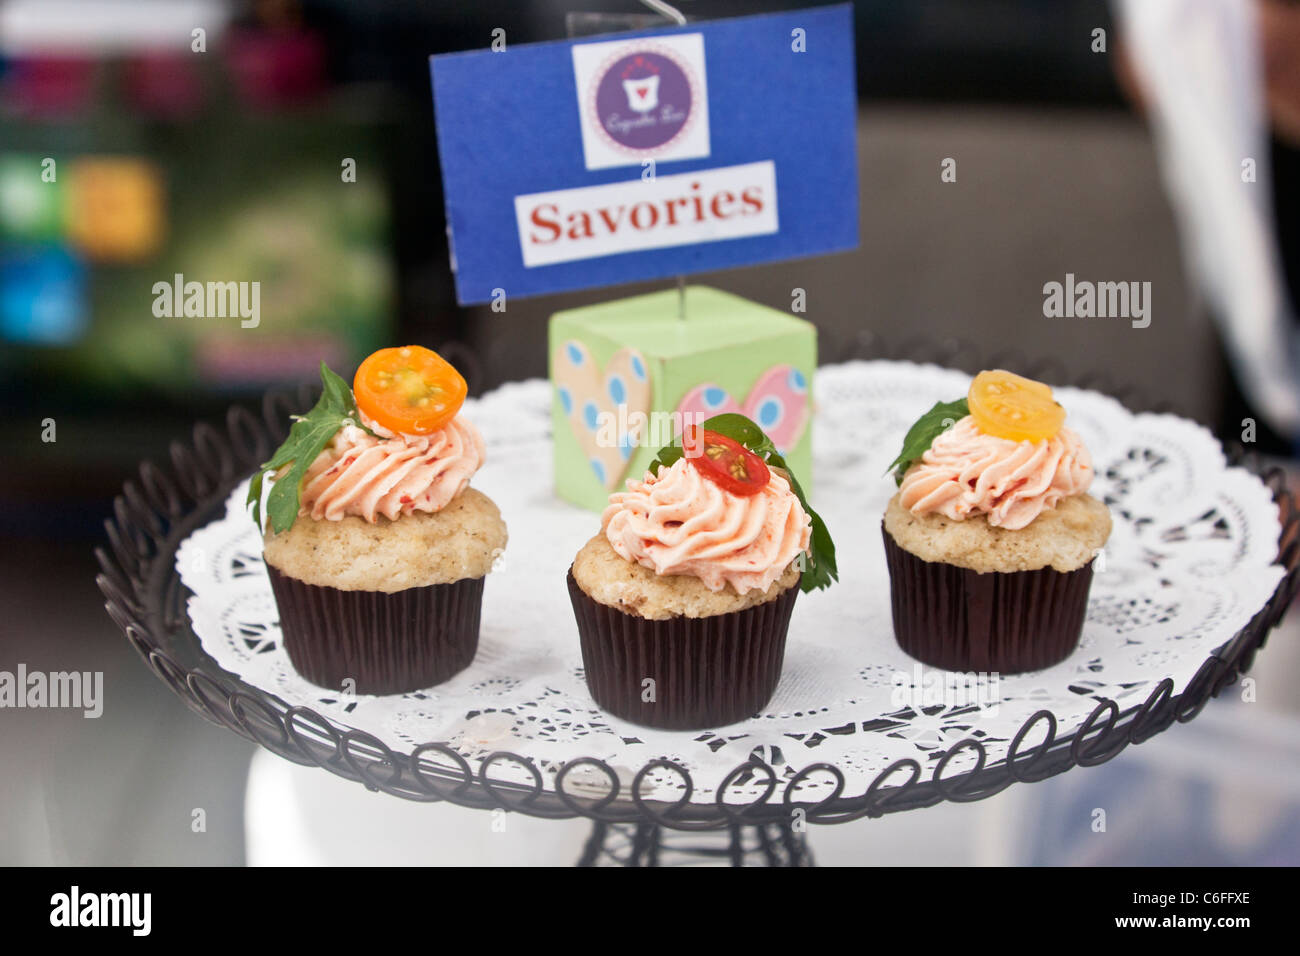 mouth watering display of three one of a kind mini cupcakes topped with strawberry icing & individual slices of Stock Photo